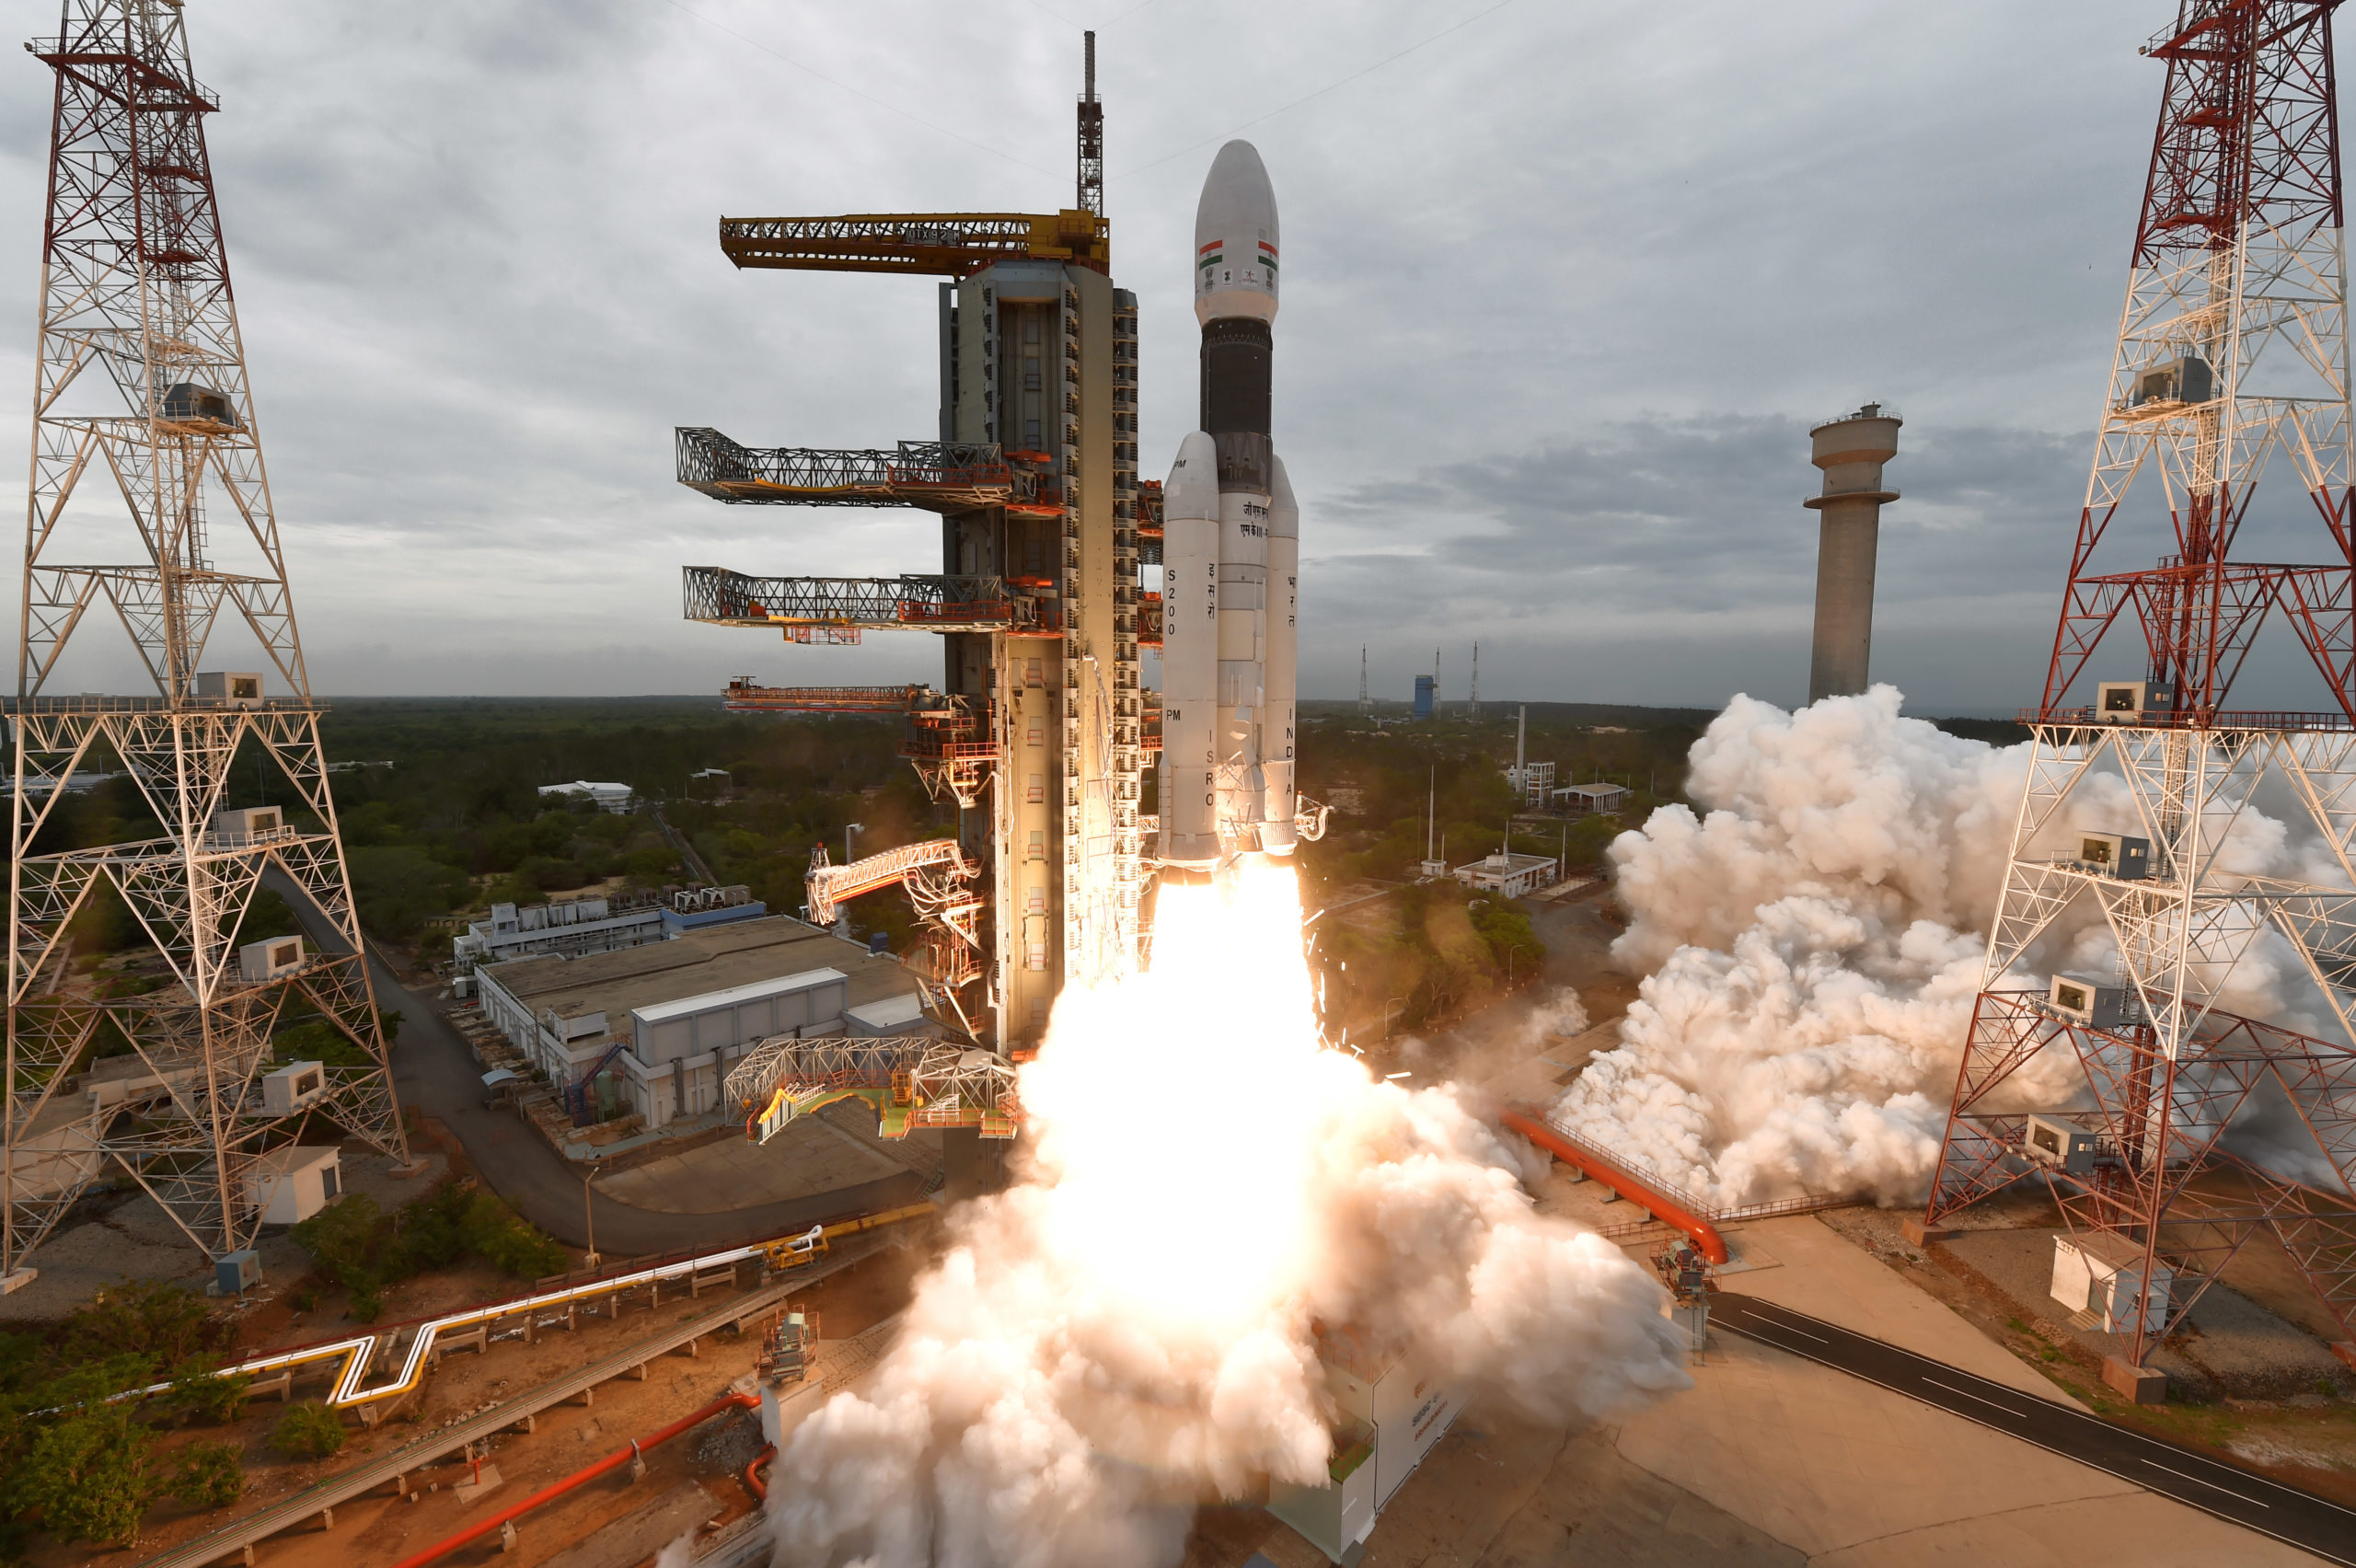 ISRO Space Mission: Chandrayaan 2 Space Vehicle Lift Off image